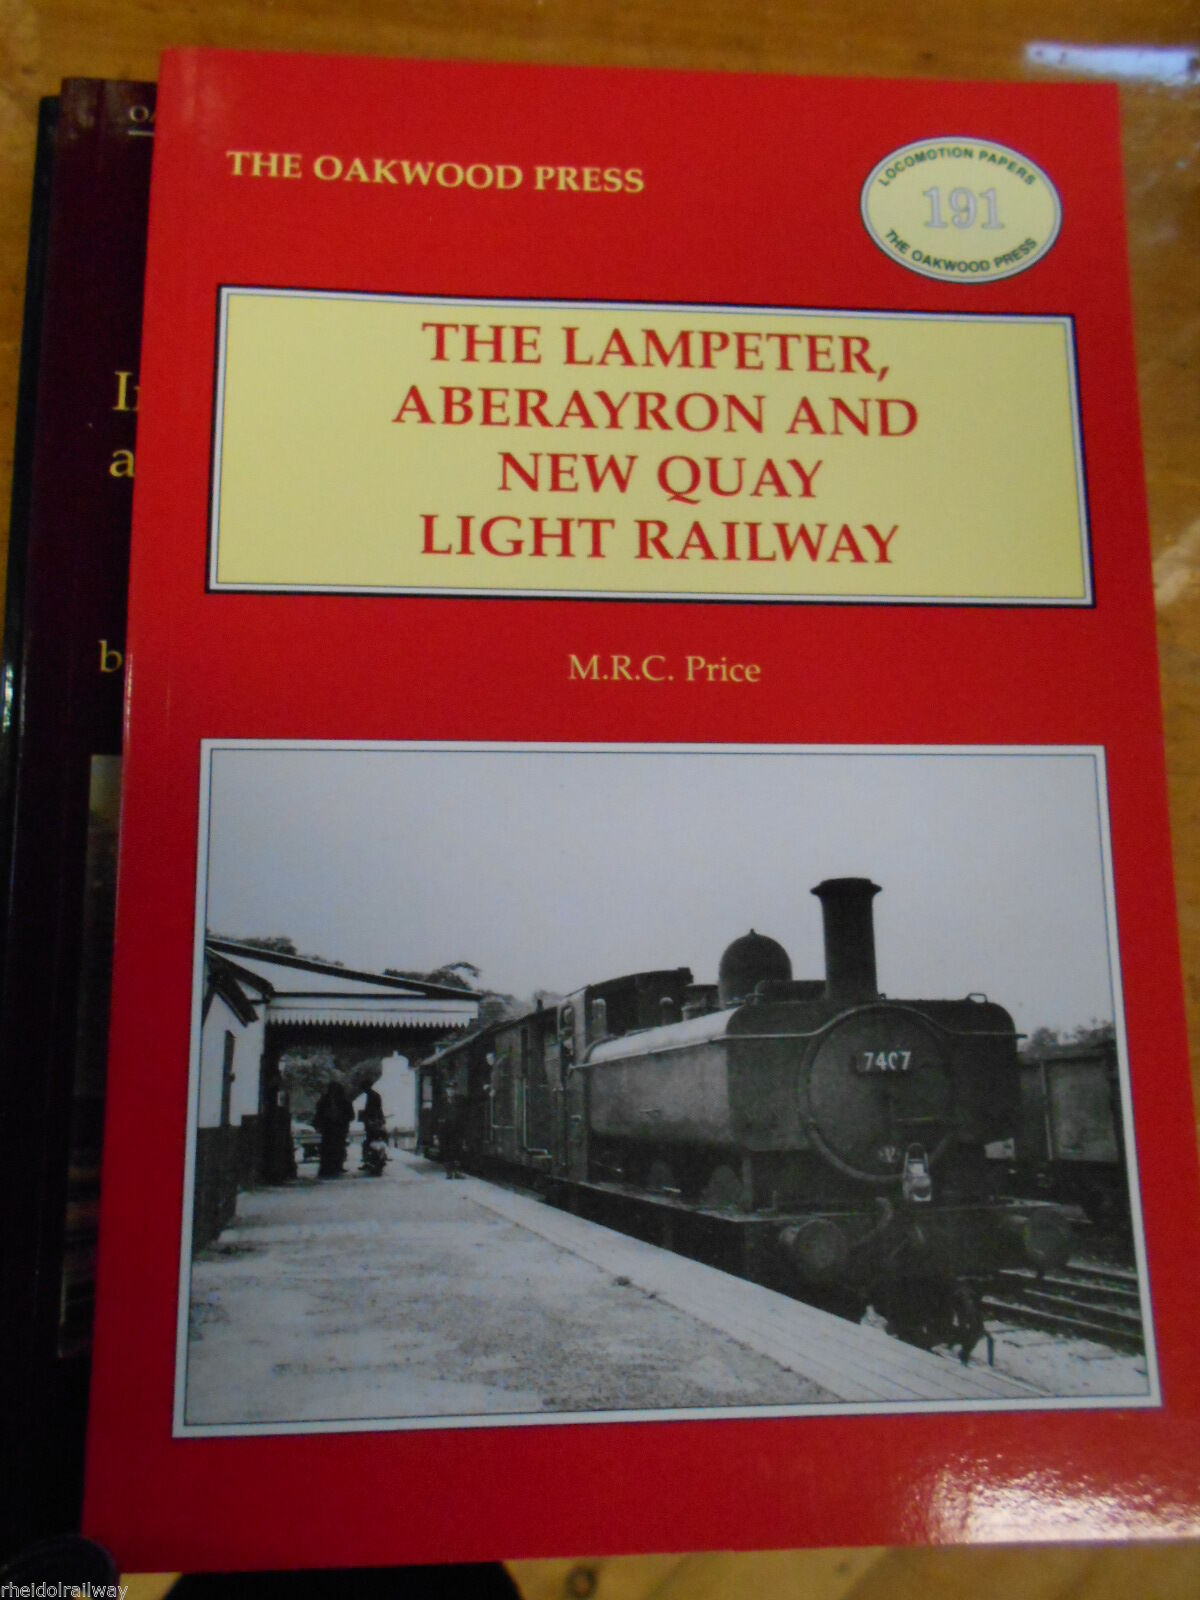 Lampeter, Aberayron, New Quay Light Railway Aberaeron GWR West Wales - The Vale of Rheidol Railway